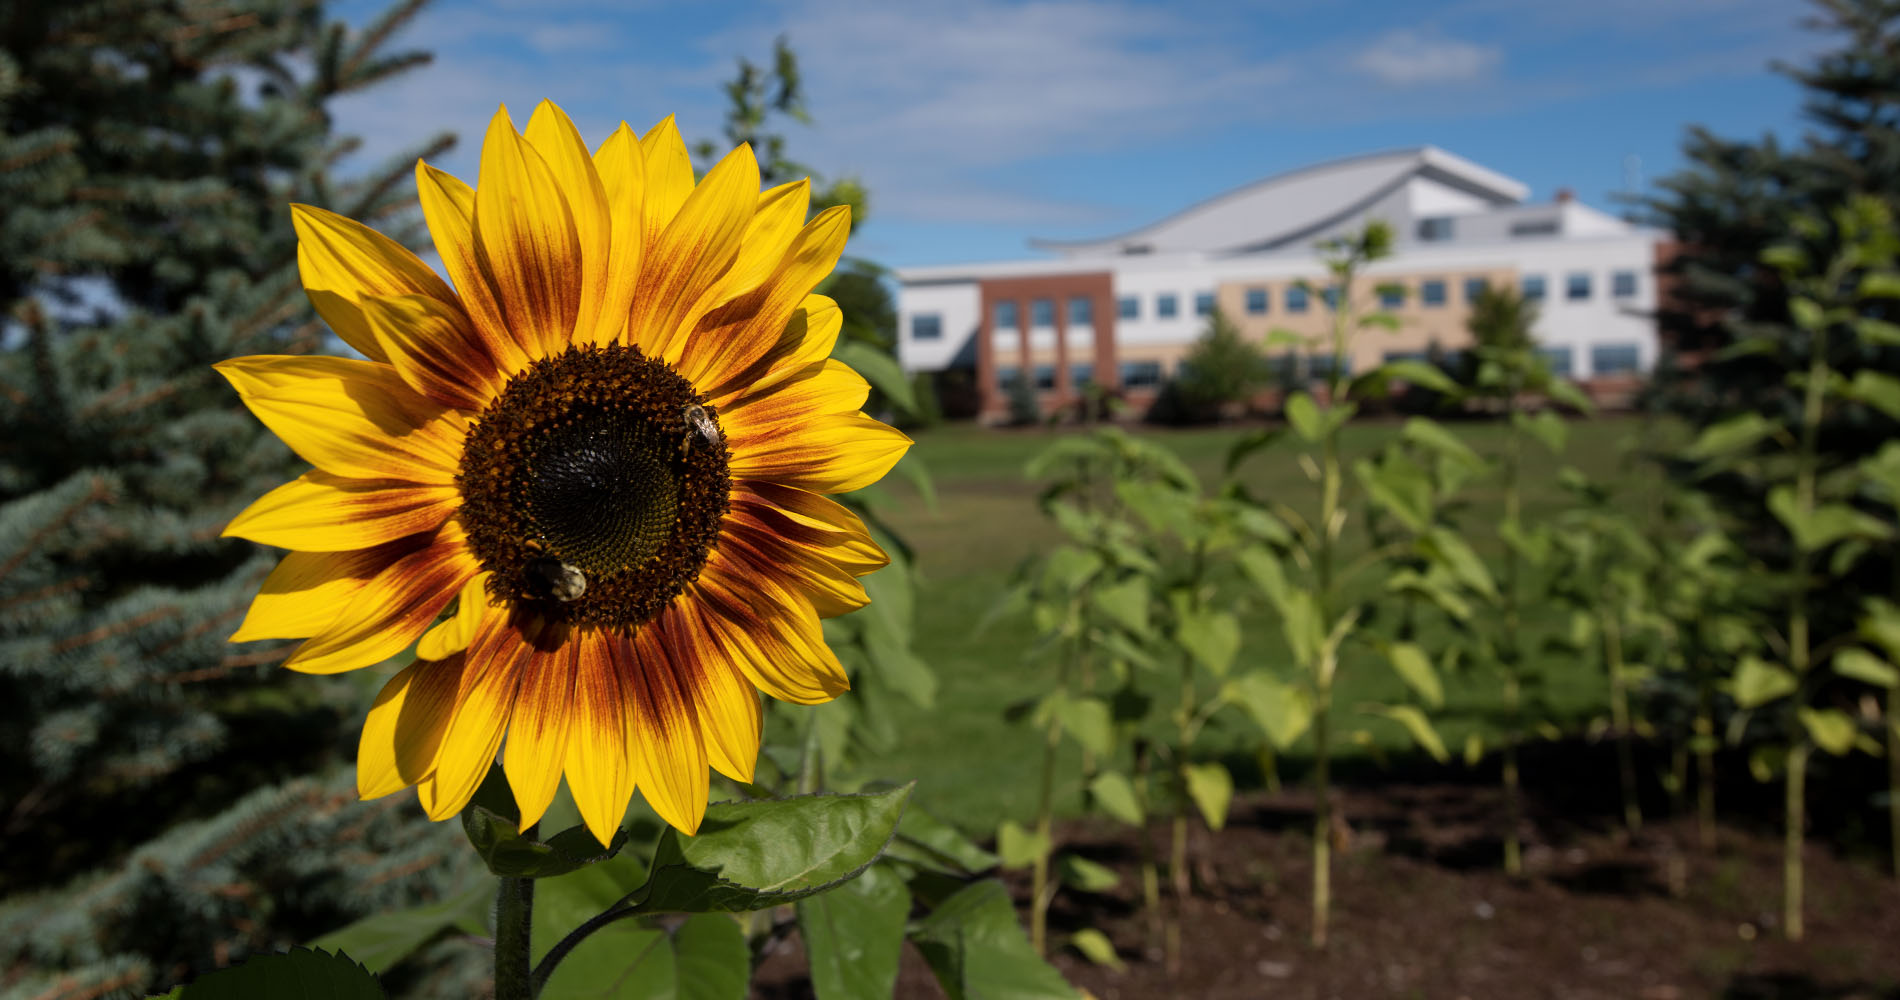 Sunflowers bloom in front of the Beardsley Meeting House